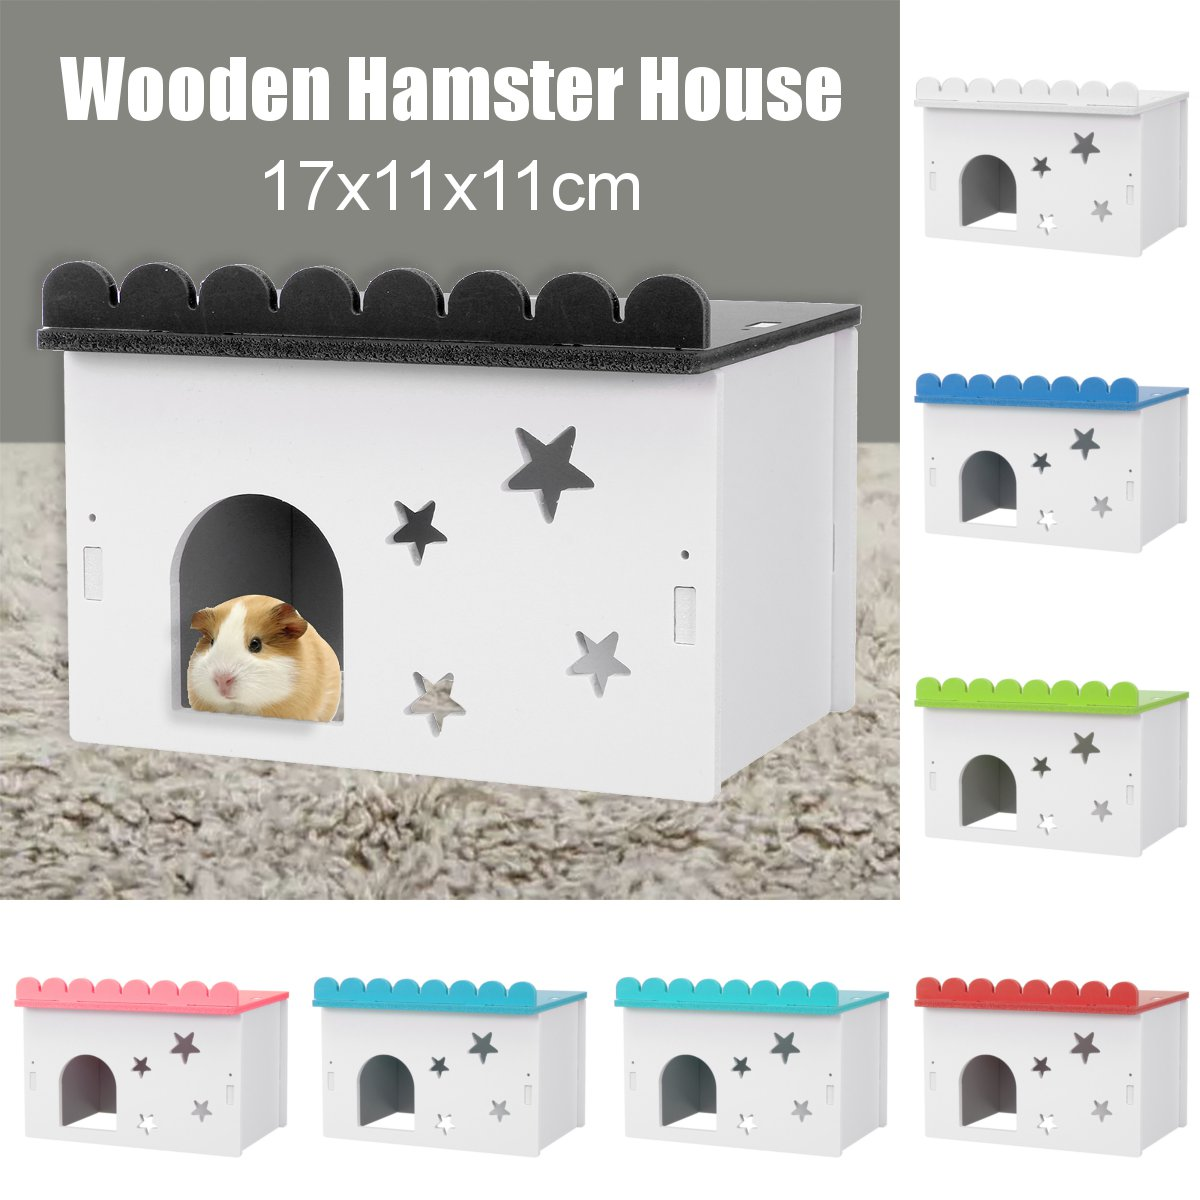 Mini Wooden Hamster House Small Animal Flat Top Rat Cabin Pet Mice Hideout Cage Castle Hedgehogs Nest Toys Pet Accessories